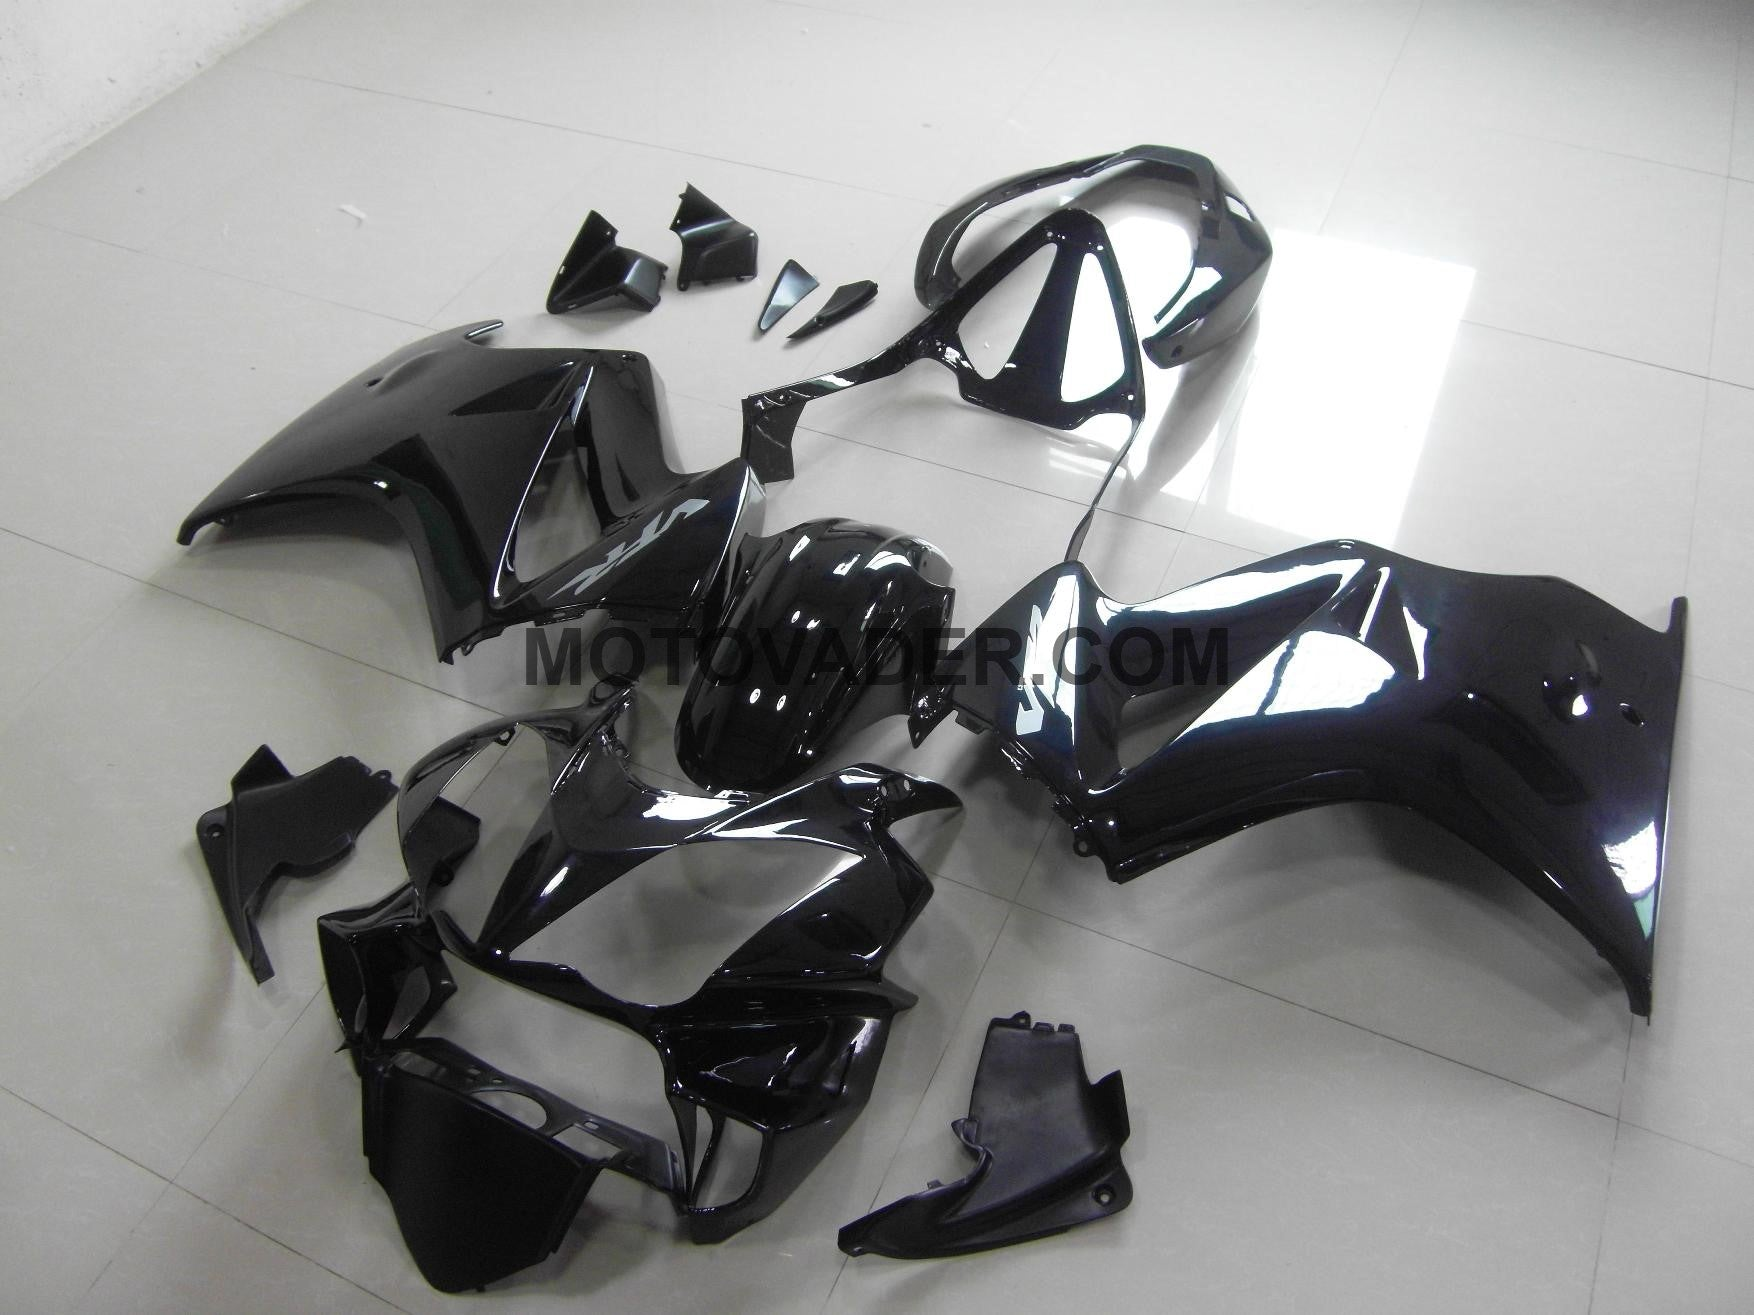 Honda VFR 800 2002-2012 Gloss Black Fairing